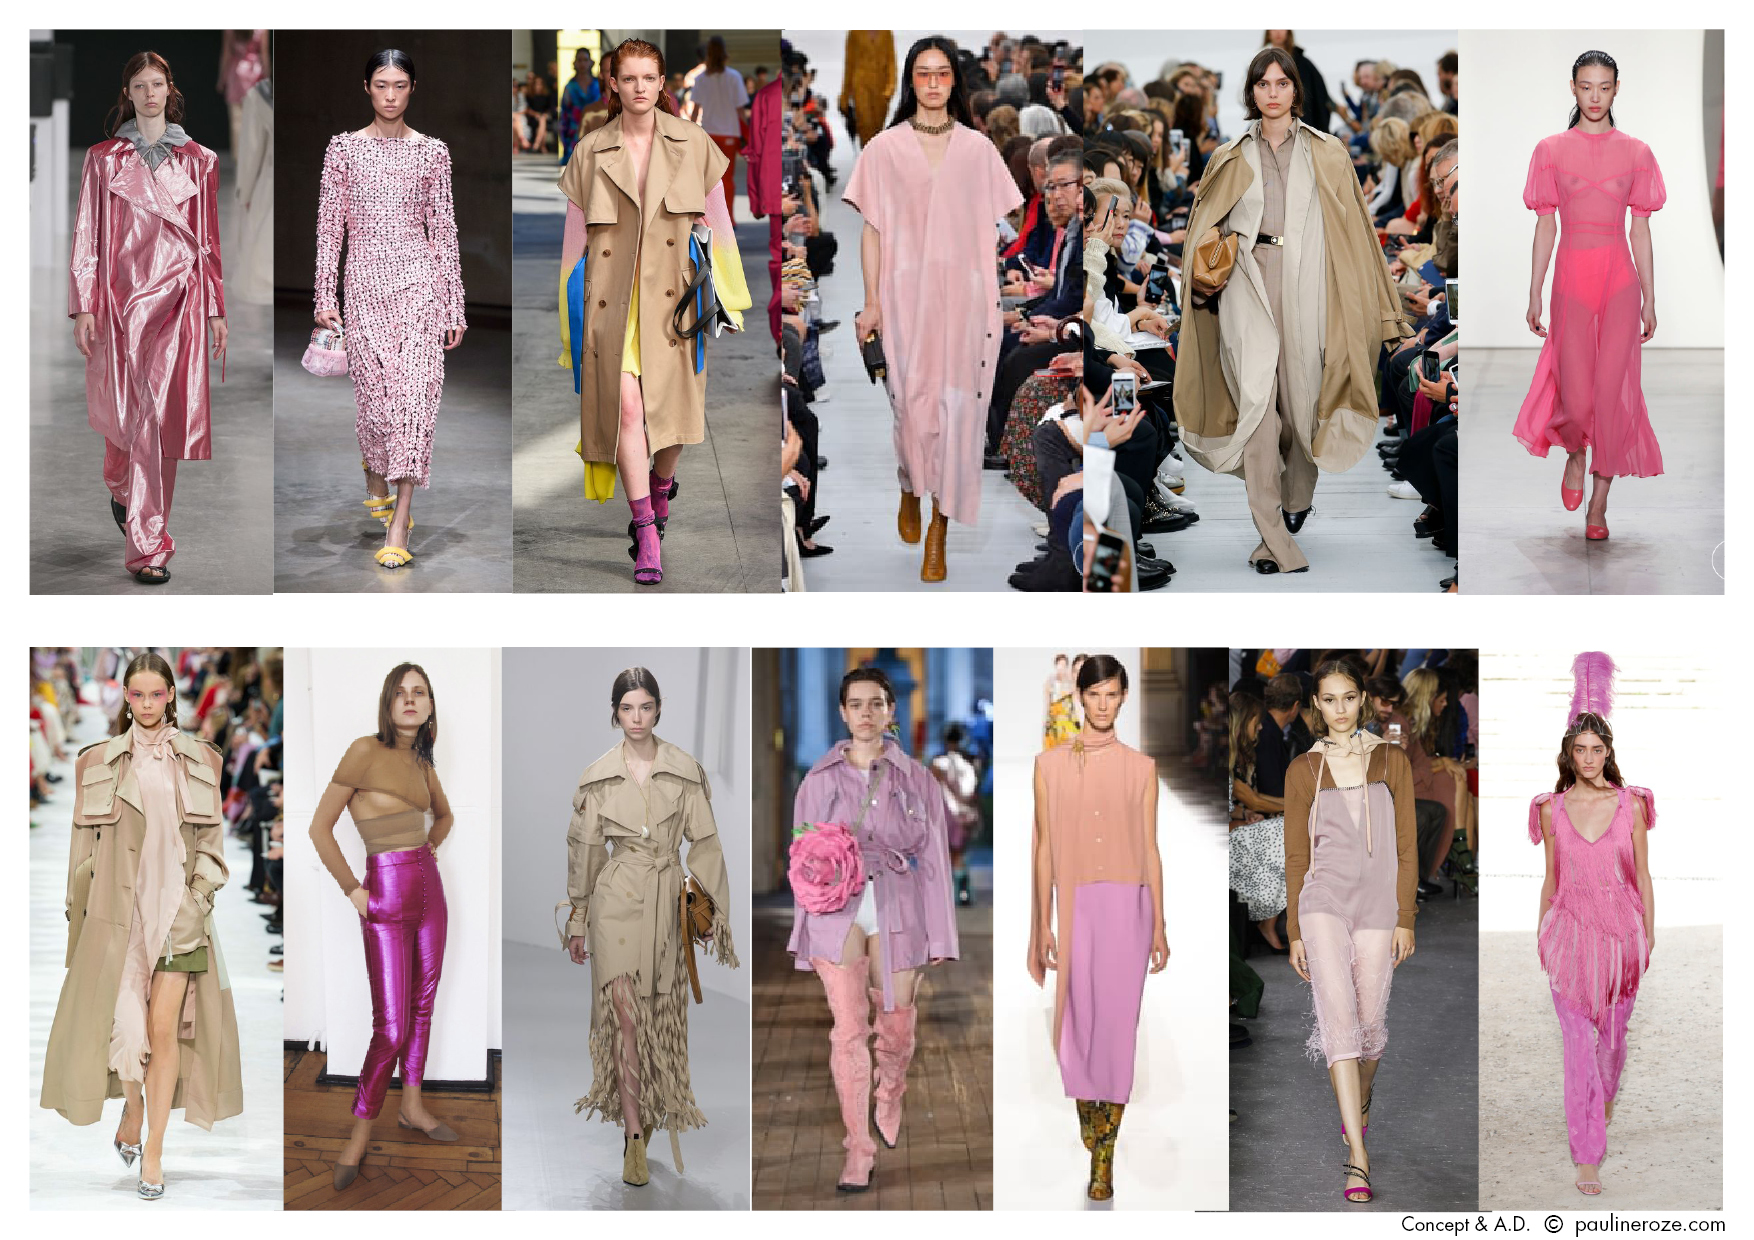 From left to right, top to bottom: Aalto, Bottega Veneta, MSGM, Céline, Céline, Prabal Gurung, Valentino, Hillier Bartley, Loewe, Neith Nyer, Dries Van Noten, N°21, Nina Ricci.